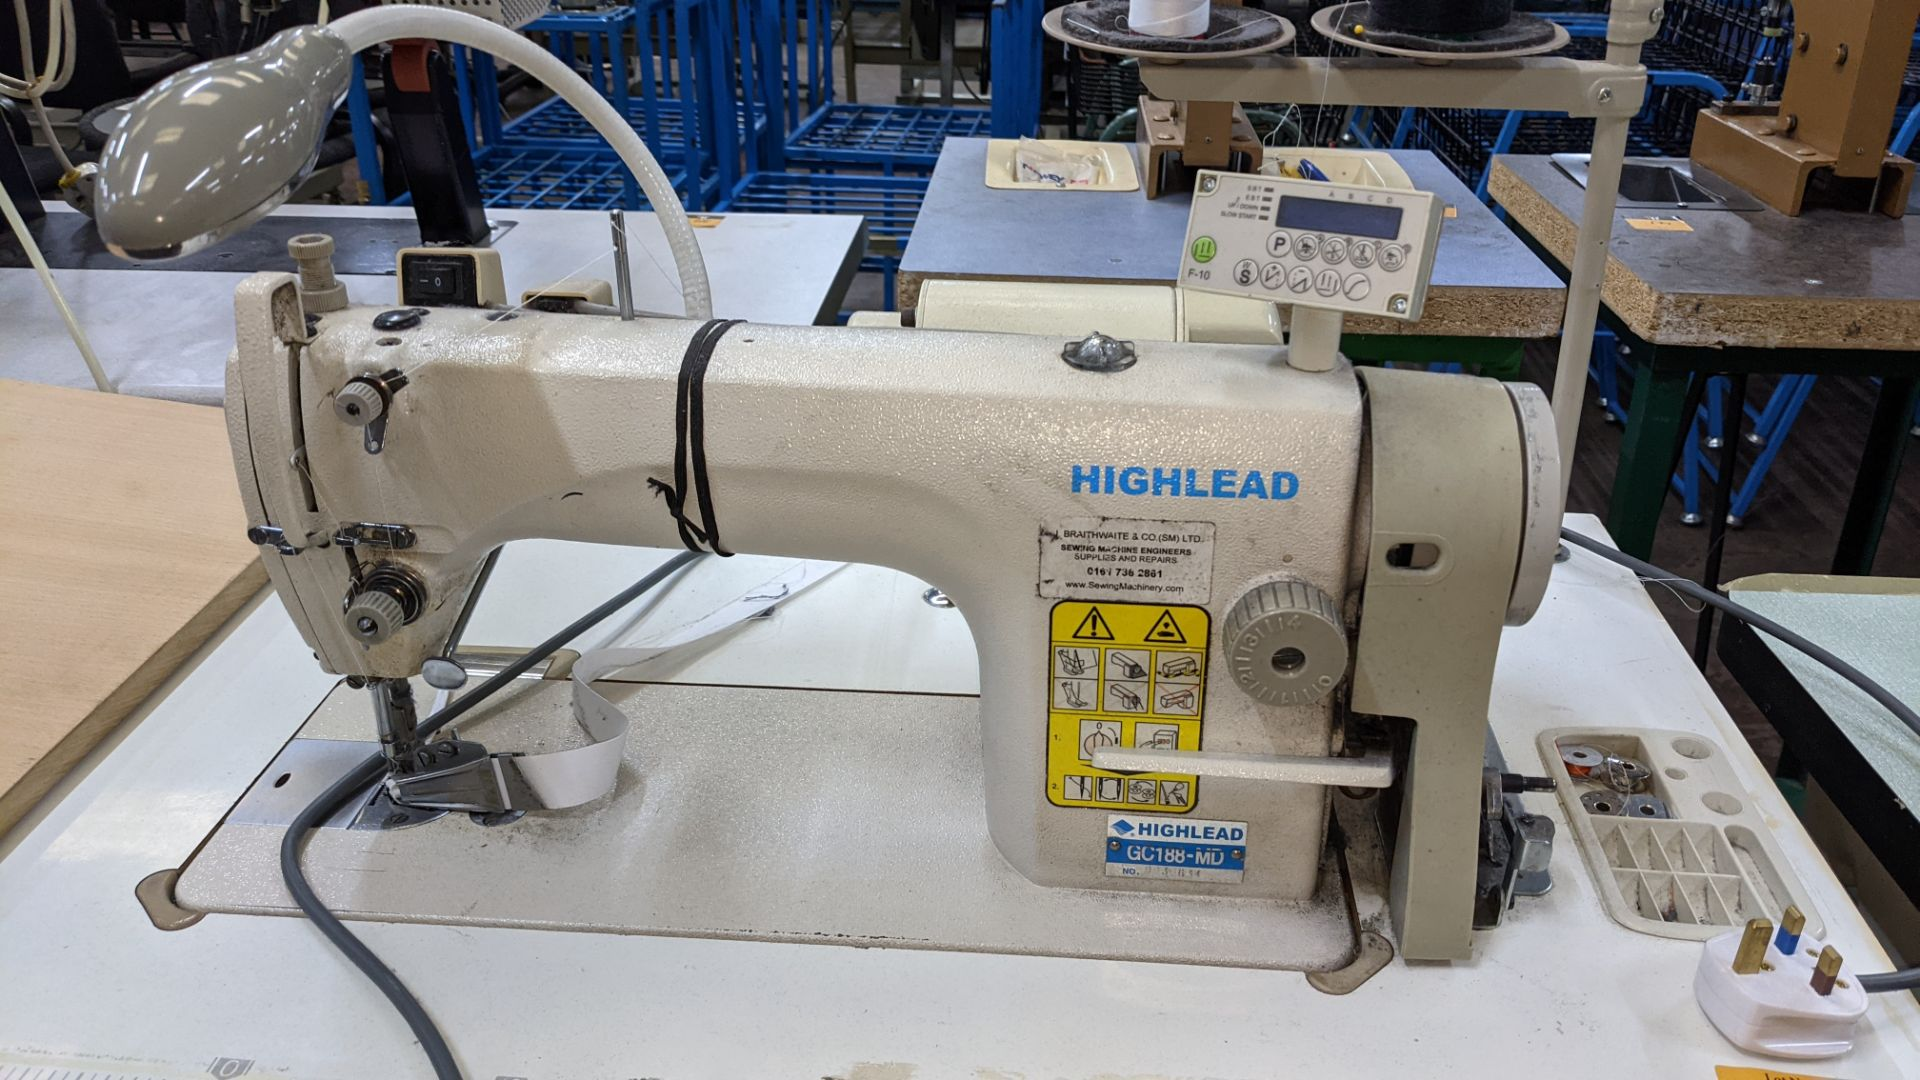 Highlead model GC188-MD sewing machine with edge band guide - Image 6 of 17